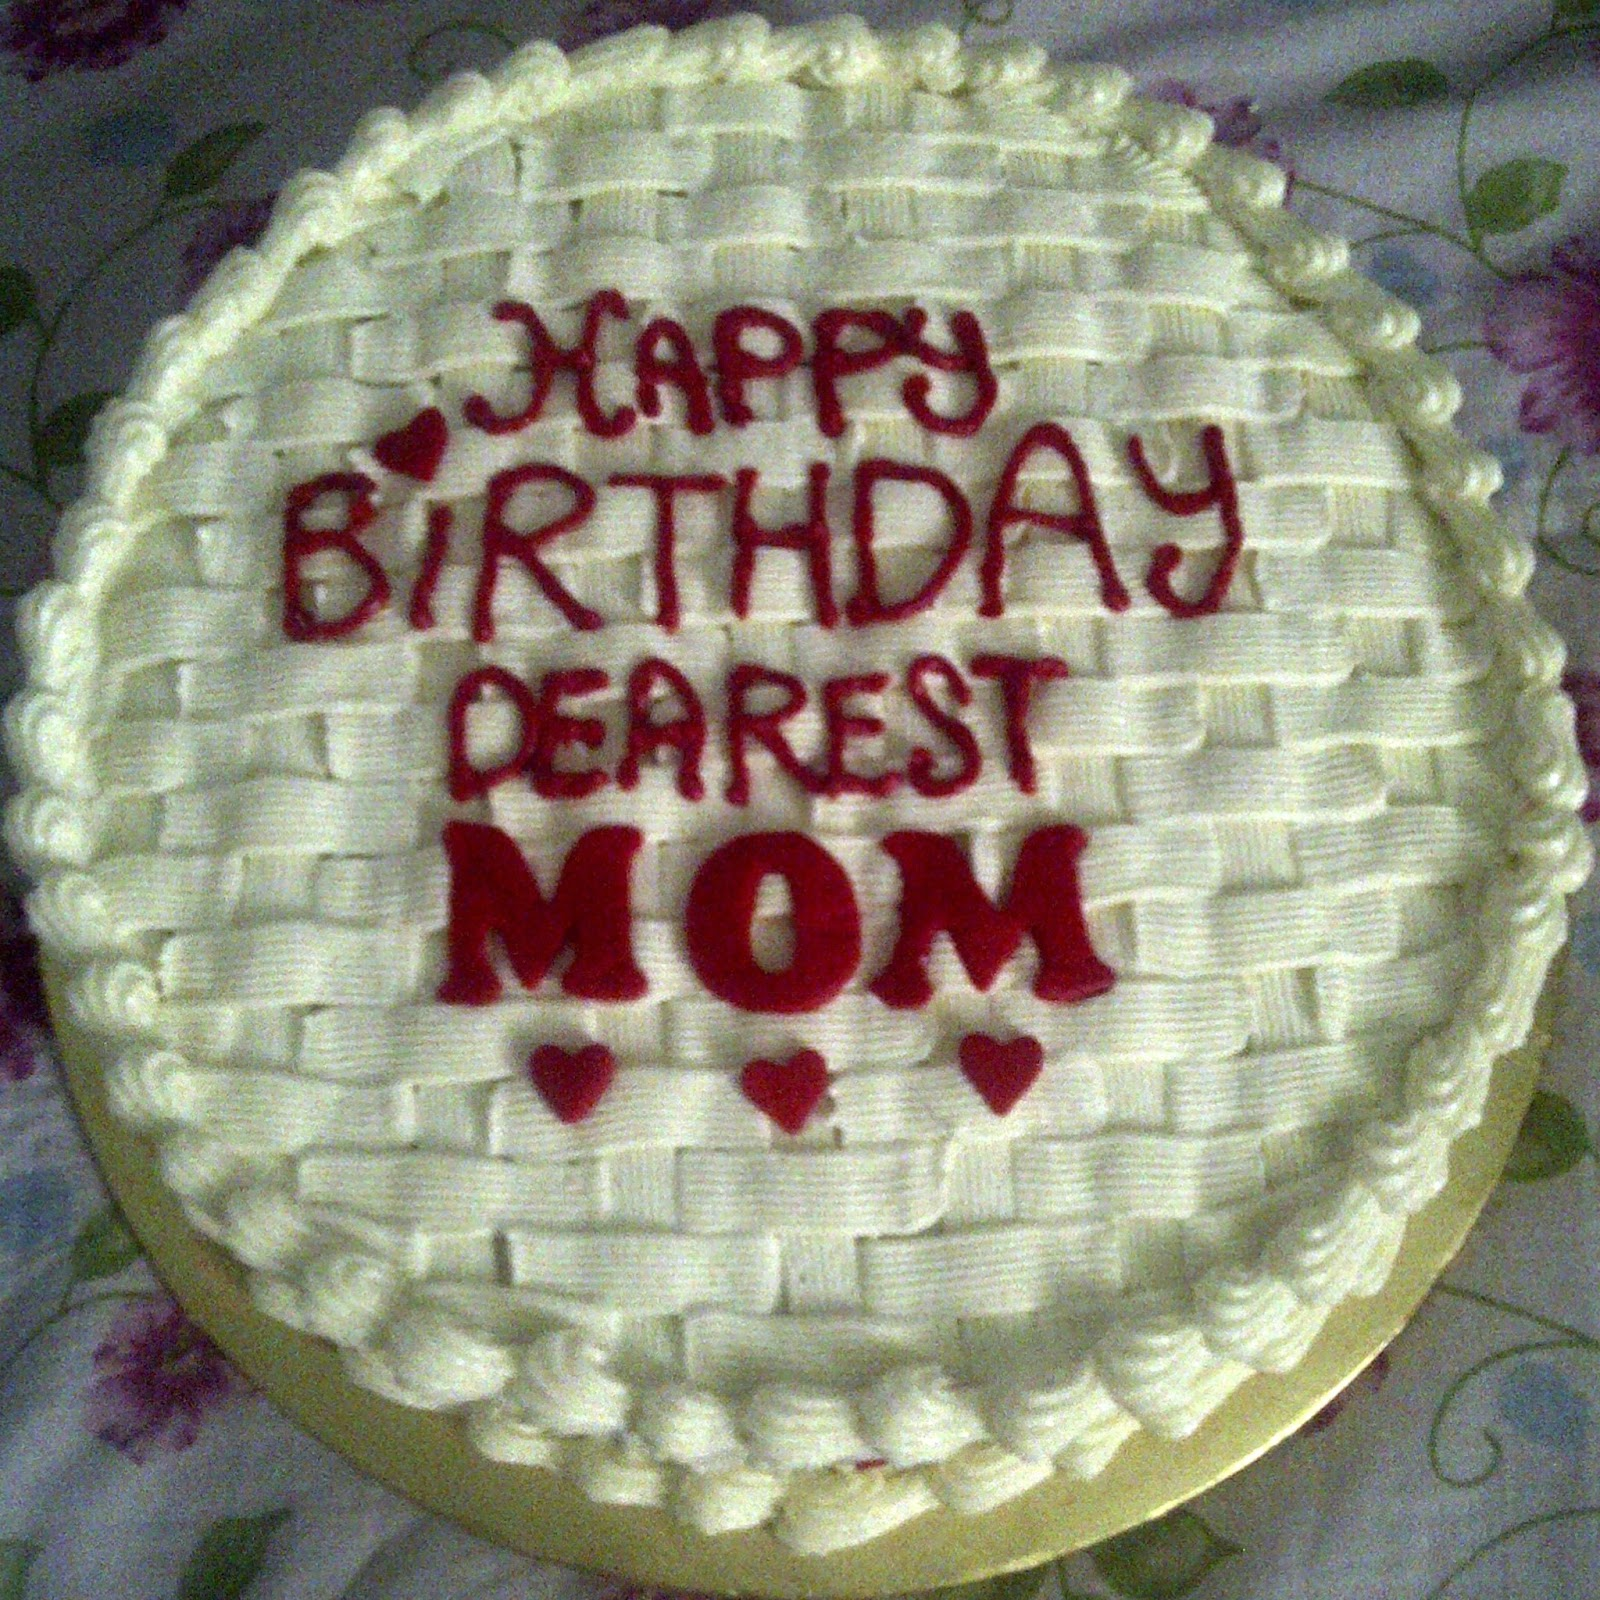 Bakerlicious Cupcakery Happy Birthday Dearest Mom Red